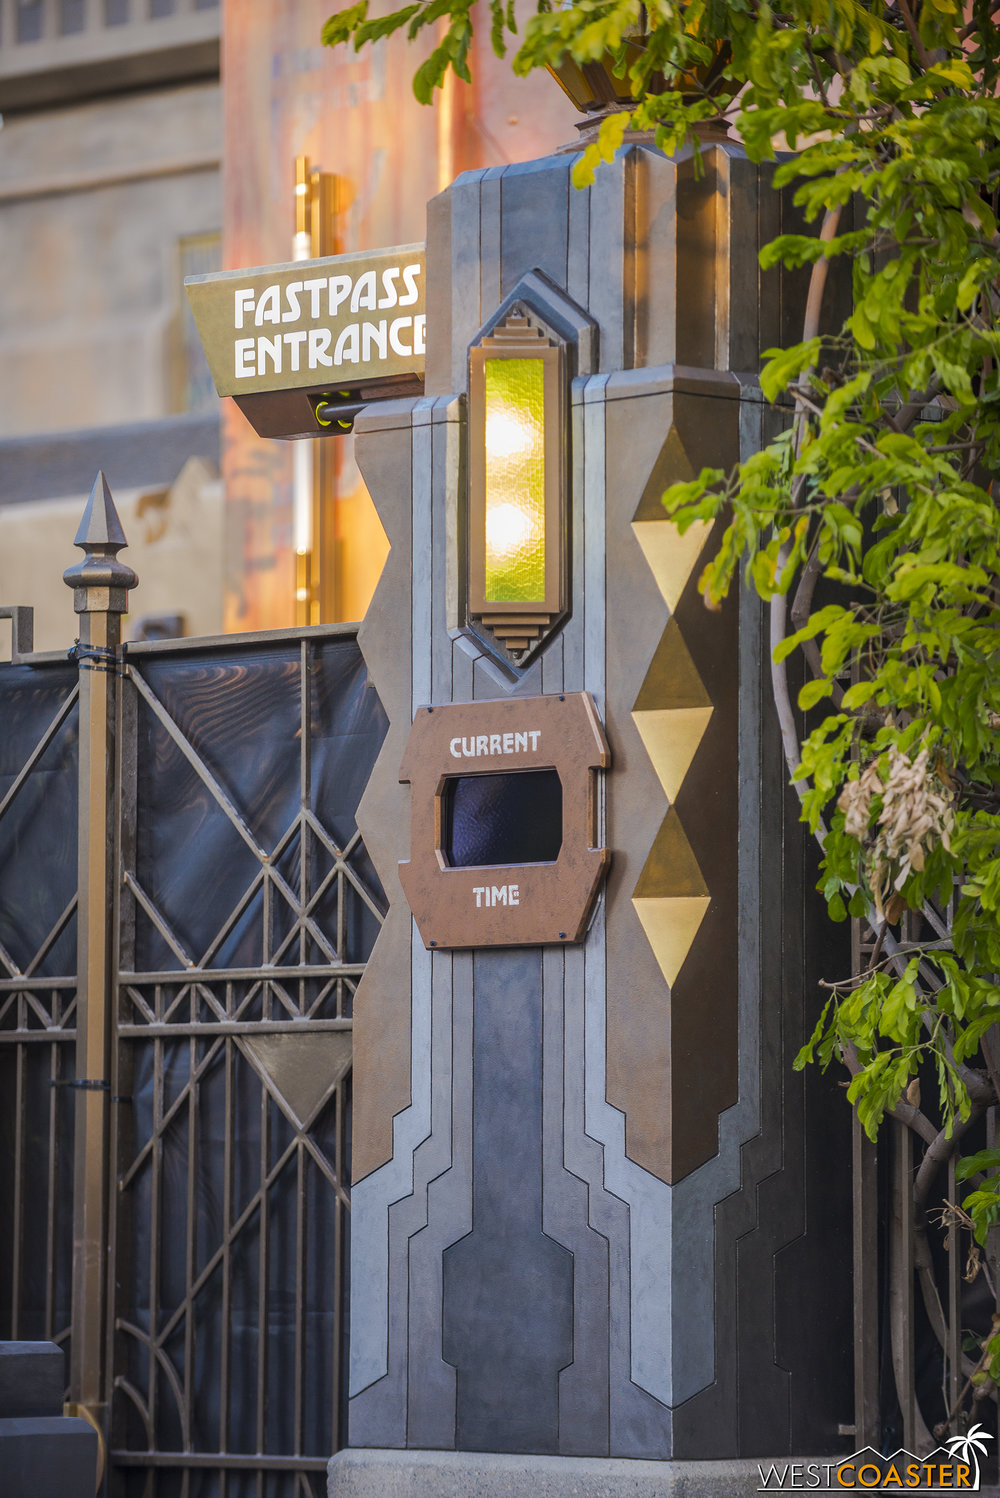 As alluded to earlier, Guardians Tower will have FastPass and MaxPass.